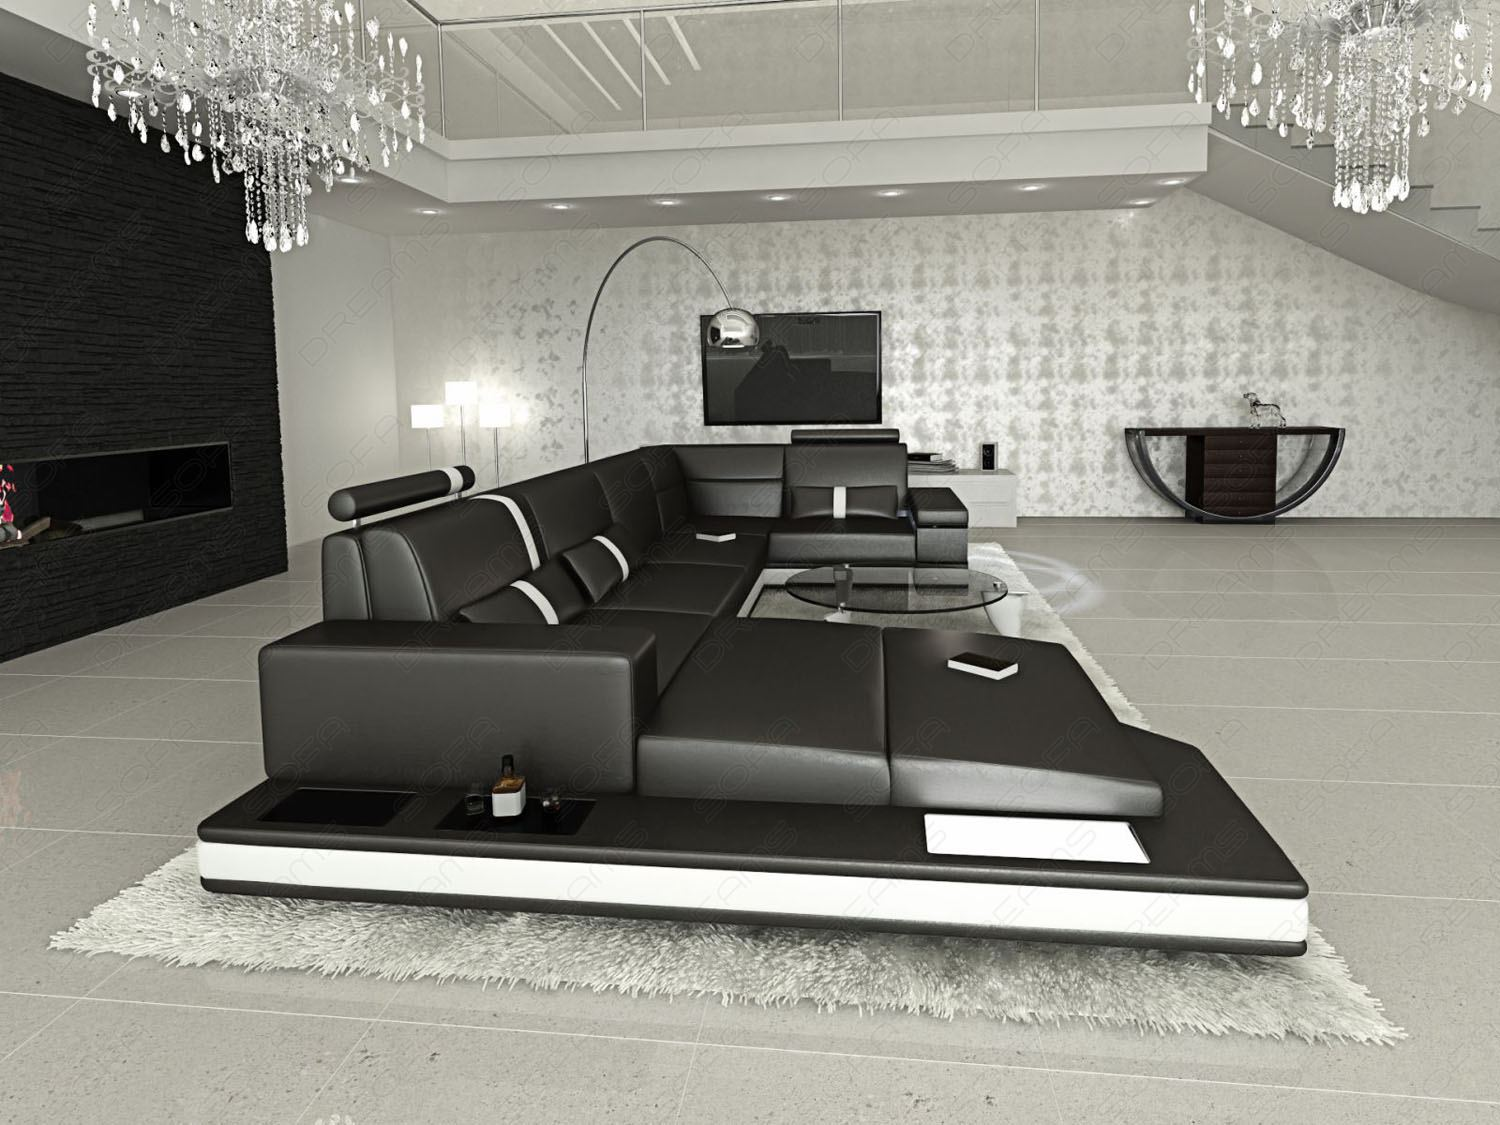 couchgarnitur wohnzimmer led messana design wohnlandschaft. Black Bedroom Furniture Sets. Home Design Ideas